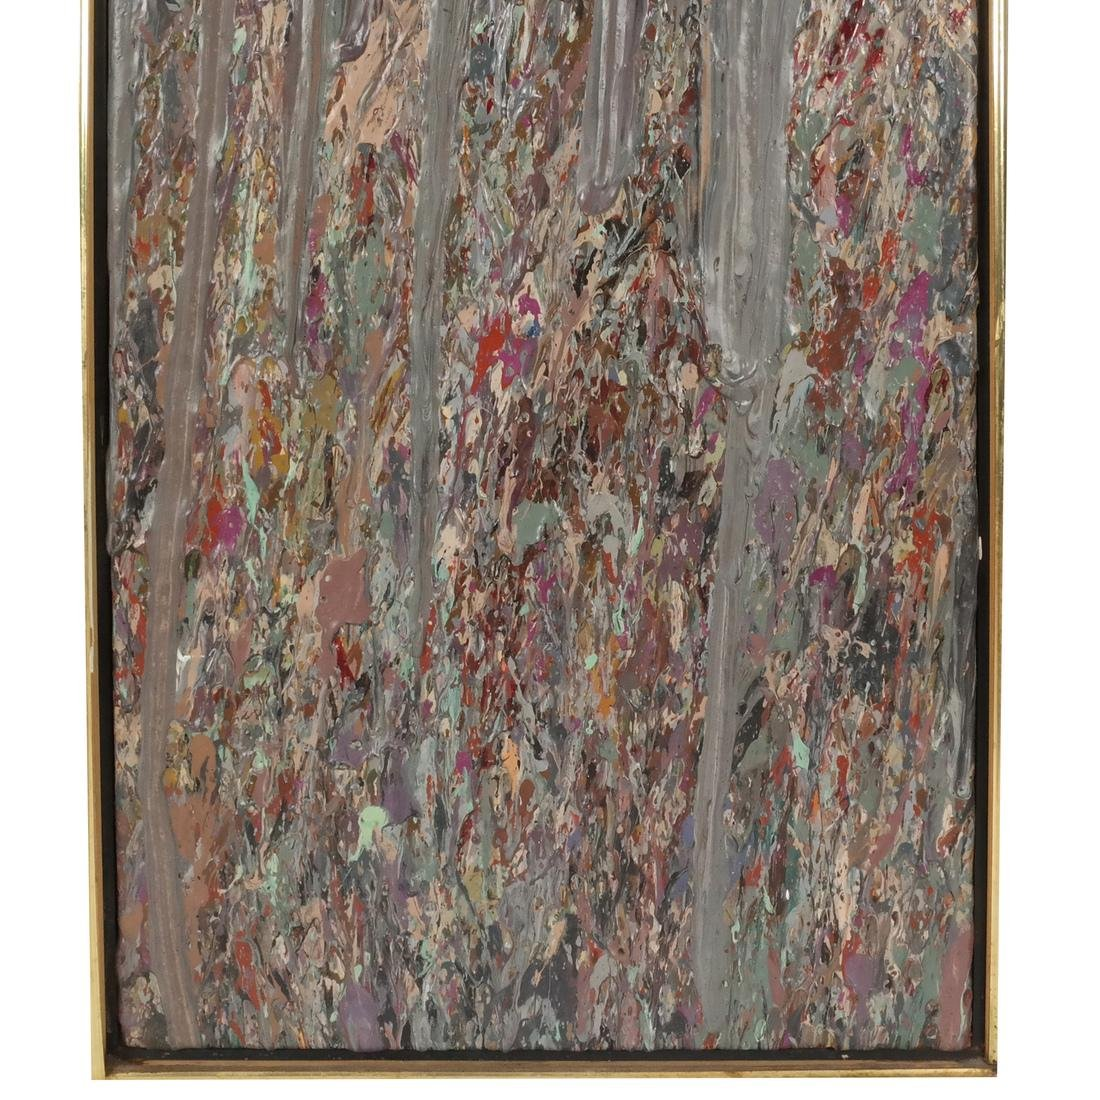 Larry Poons, Untitled - 5